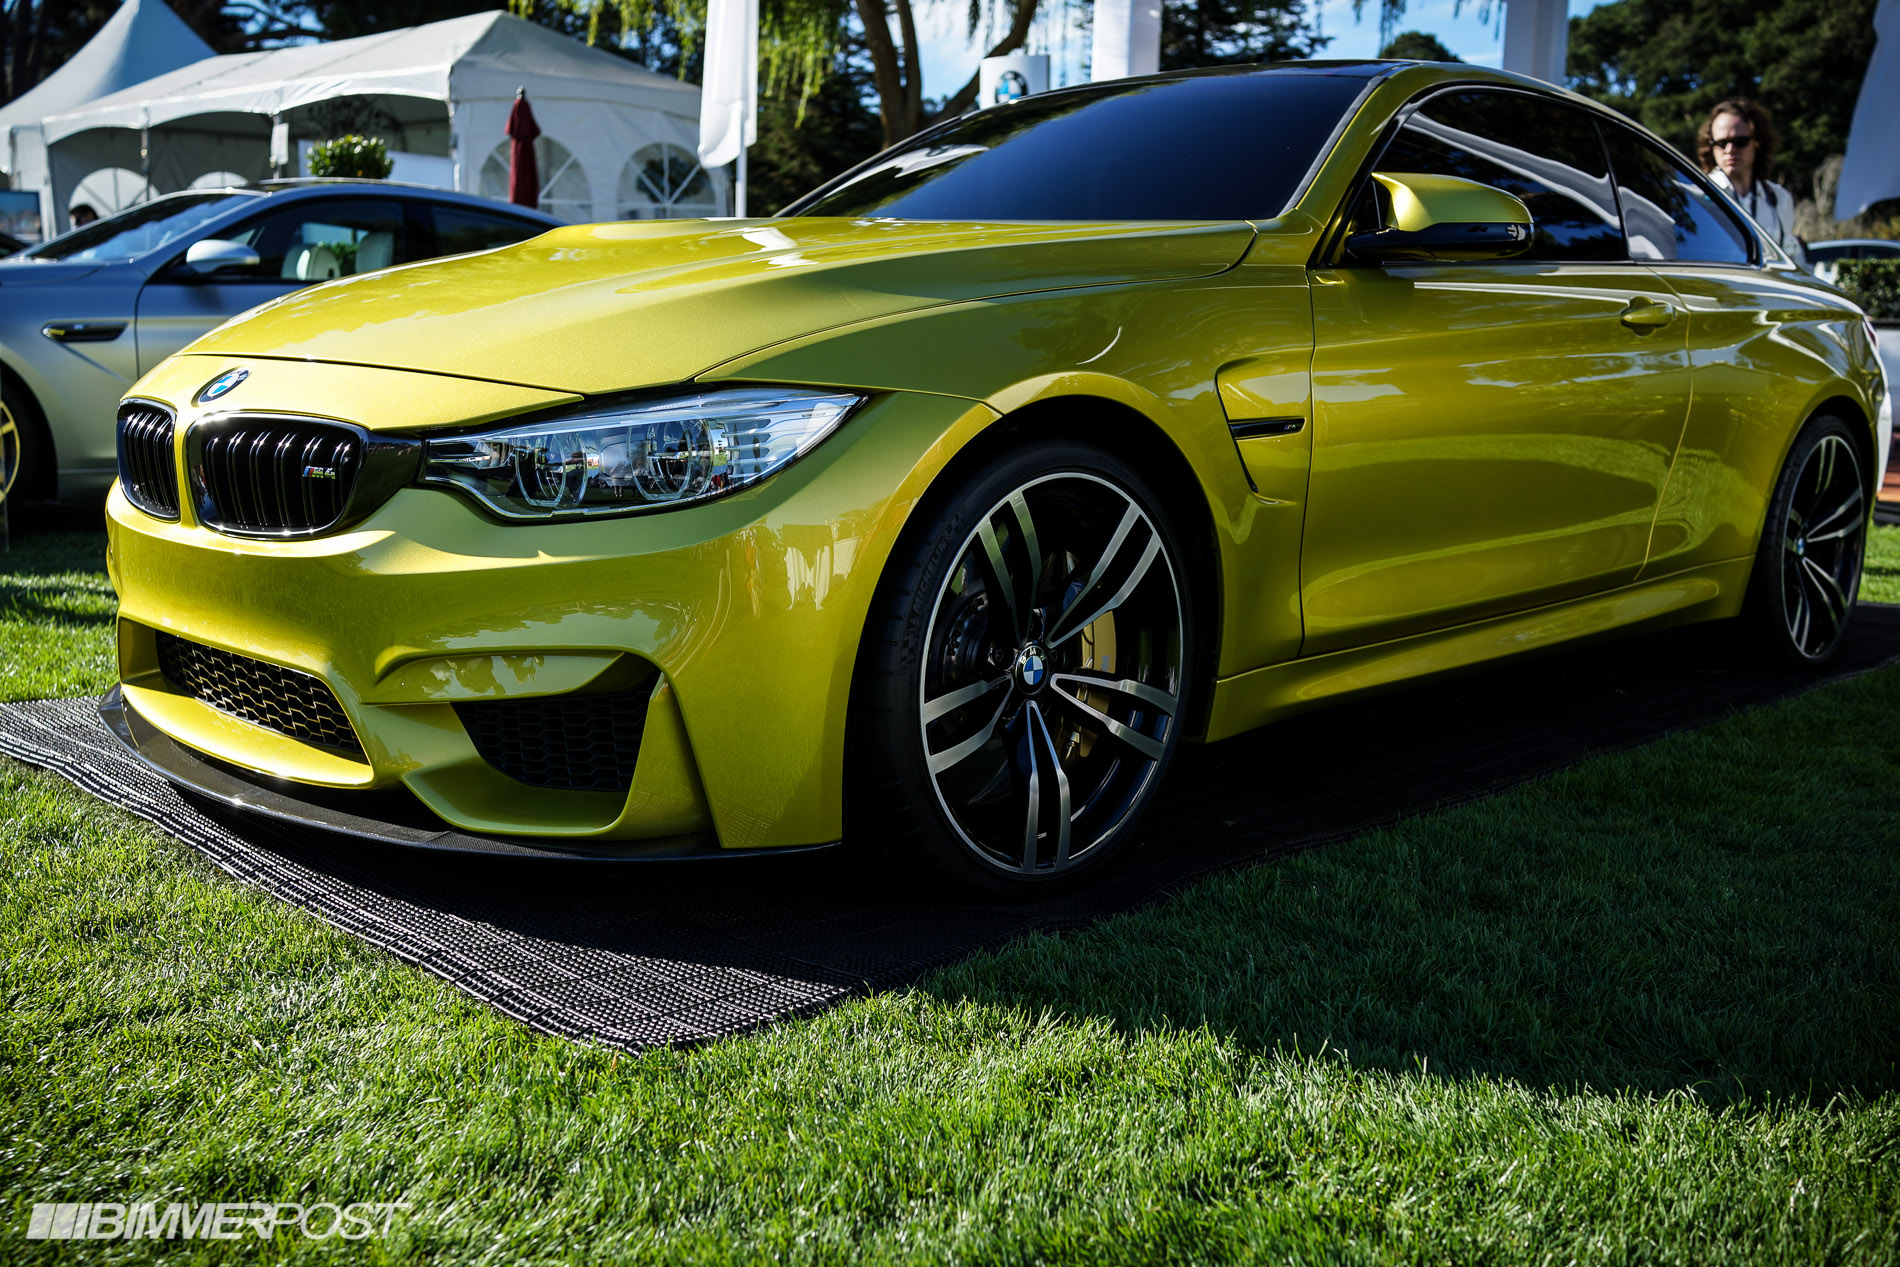 Bimmerpost Pebble Beach Recap Bmw M4 Concept Highlights Reactions And Notes